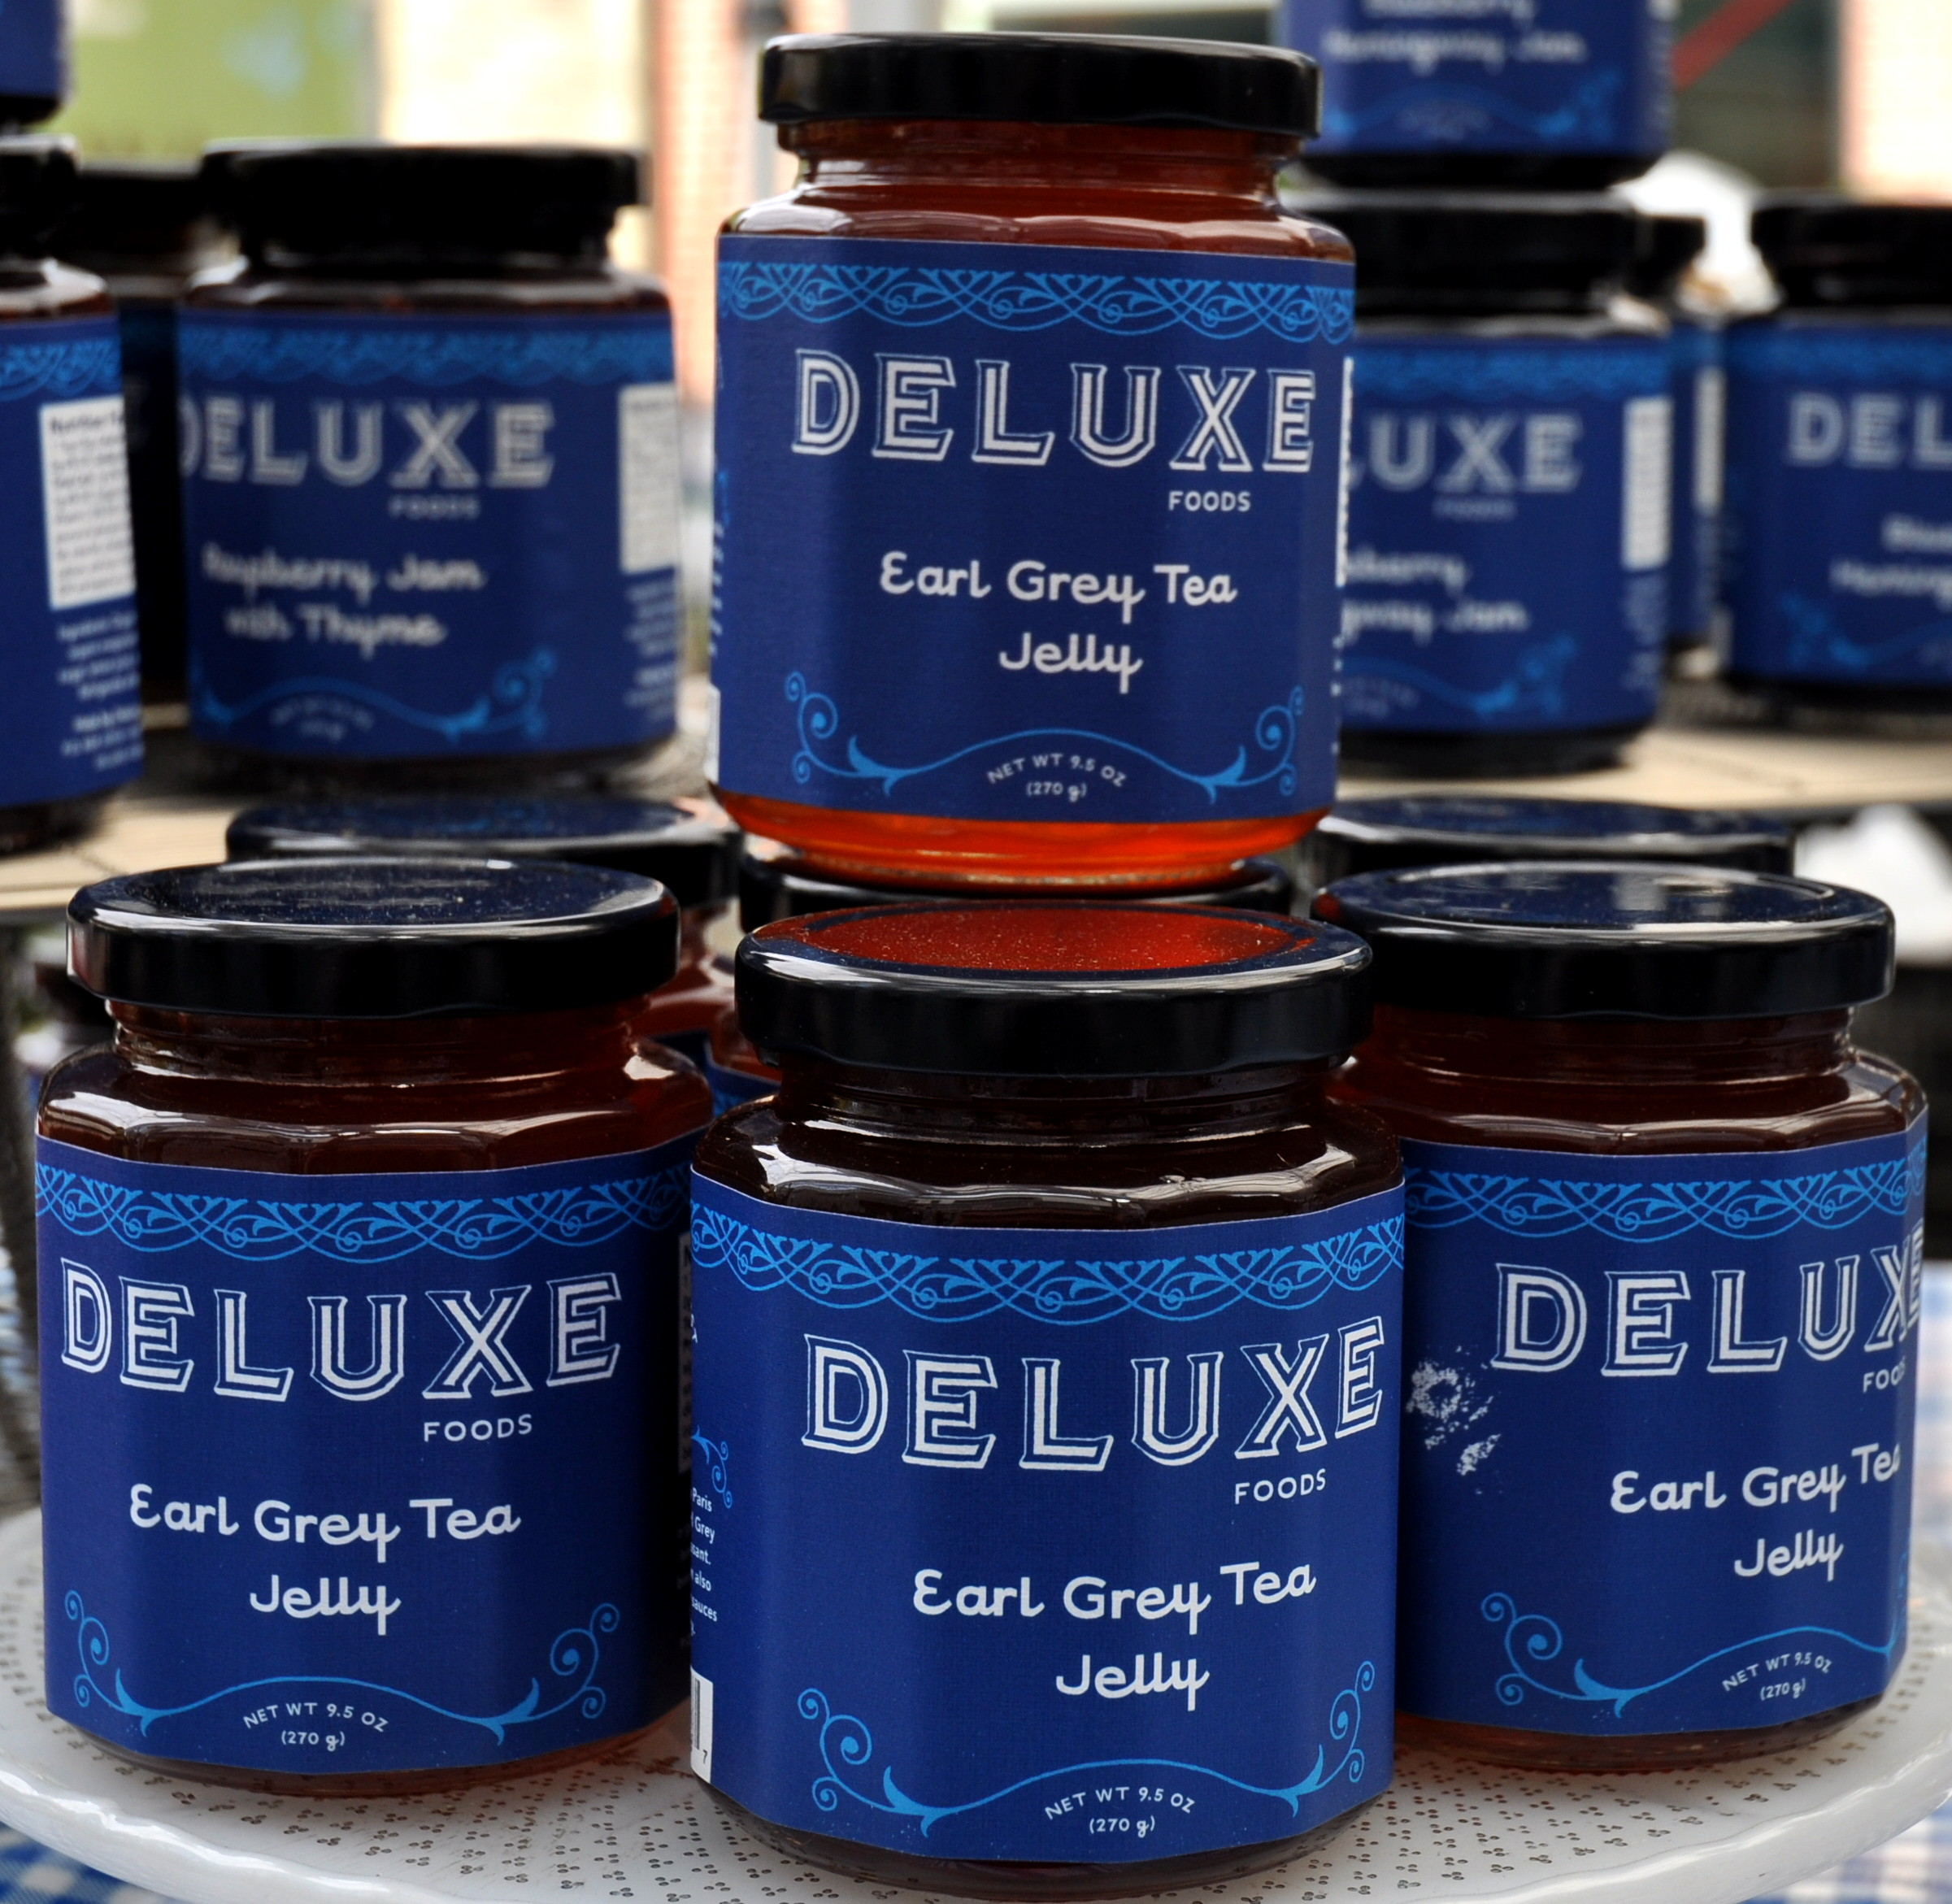 Earl grey tea jelly from Deluxe Foods. Photo copyright 2013 by Zachary D. Lyons.